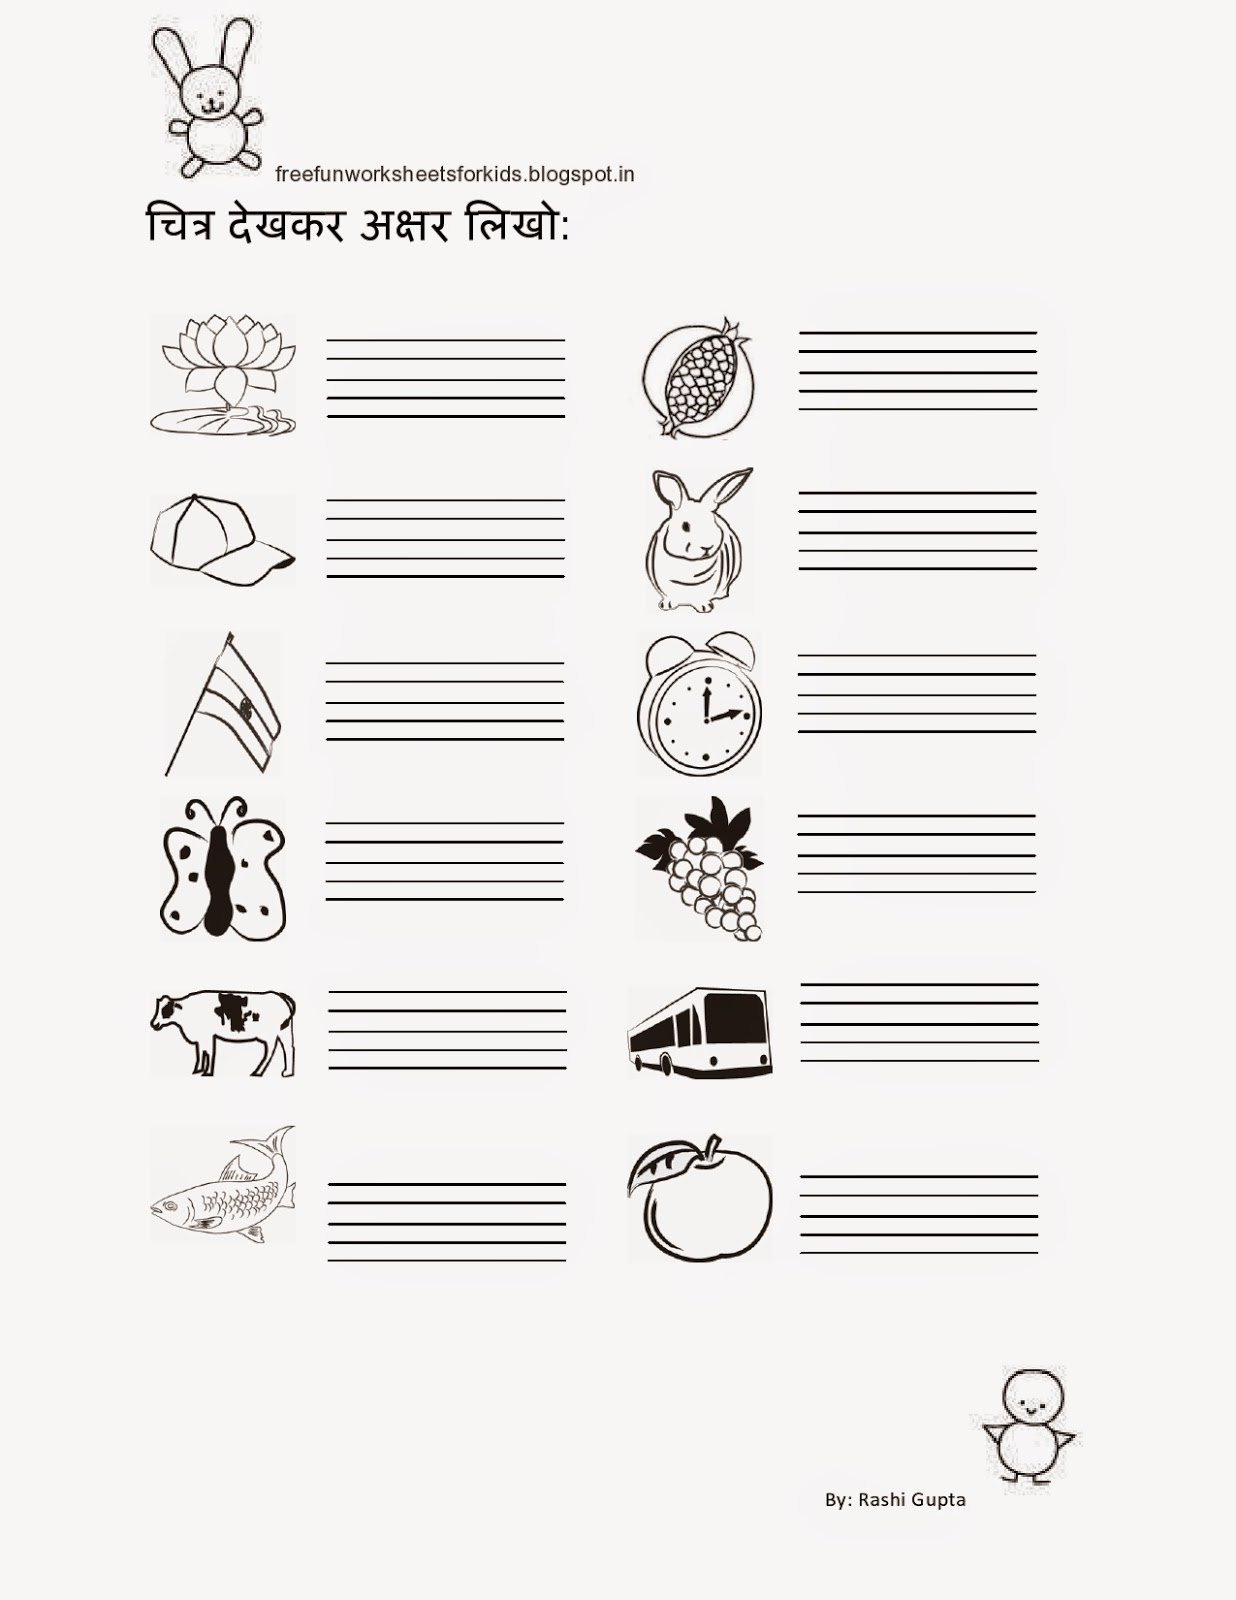 Fun Class Worksheets : Free fun worksheets for kids printable hindi